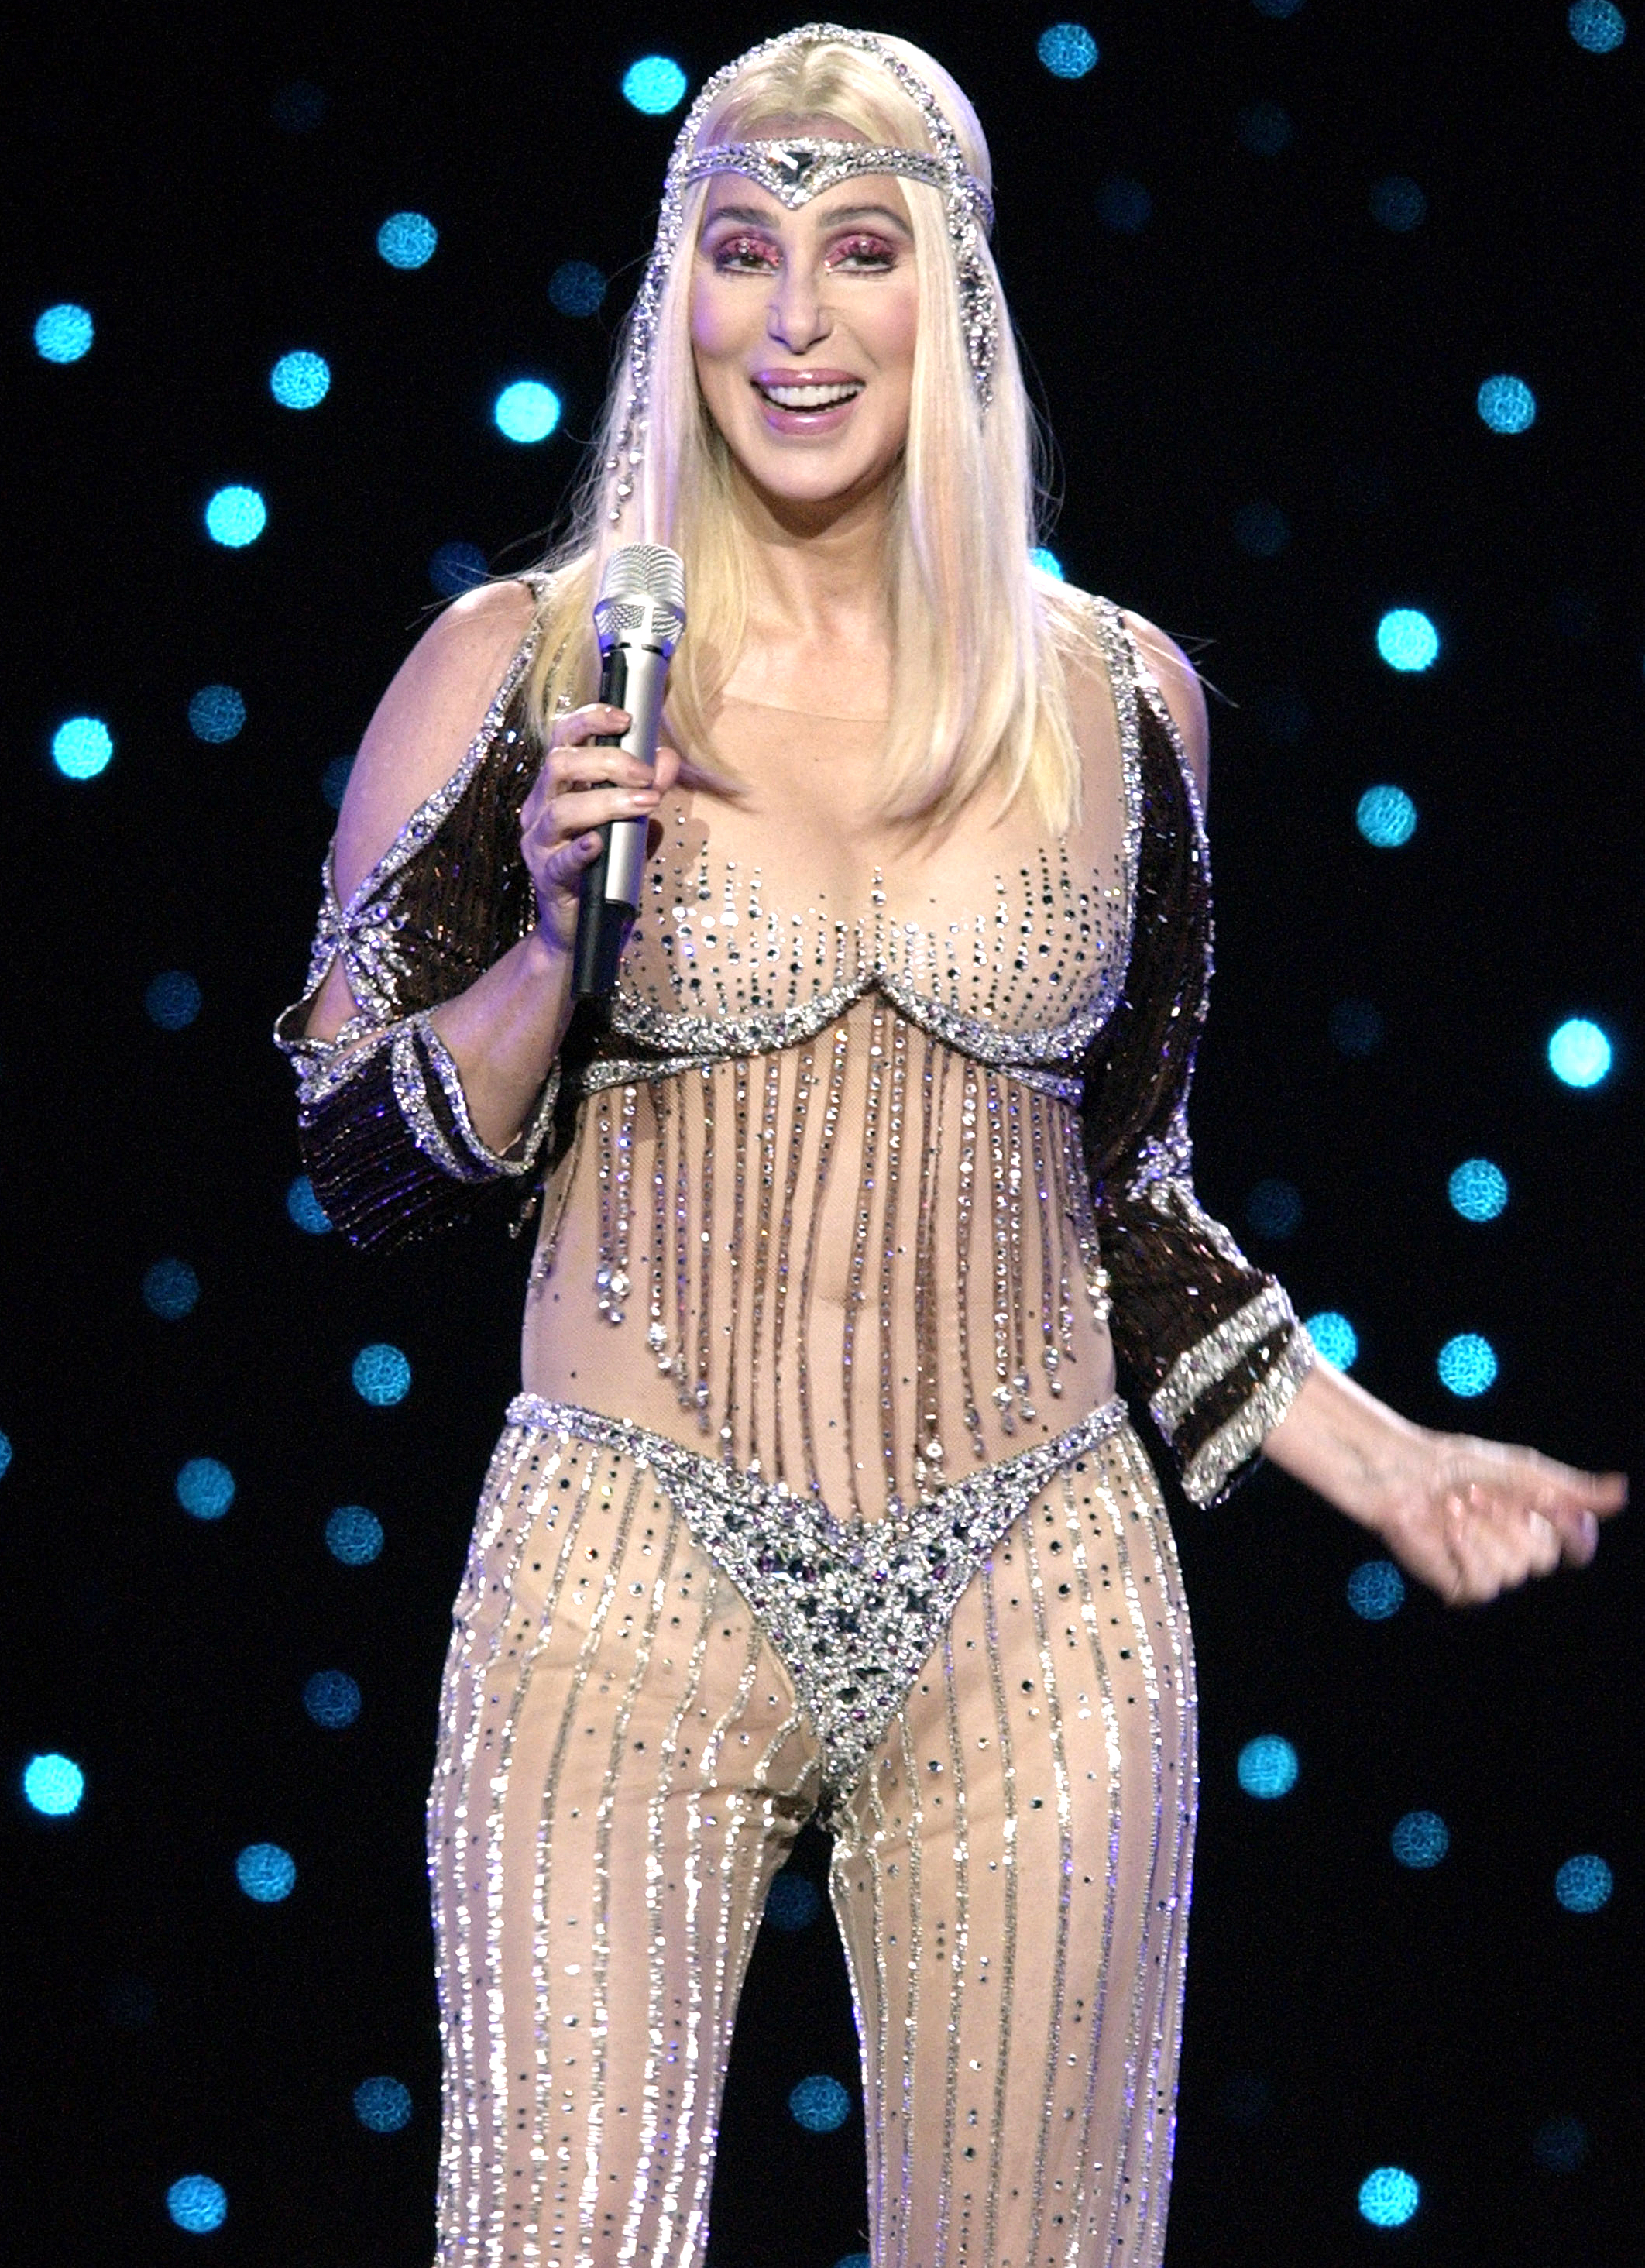 """Cher Through The Years - Cher in Concert with her """"Living Proof Farewell Tour"""" in New York City Cher (Photo by KMazur/WireImage)"""